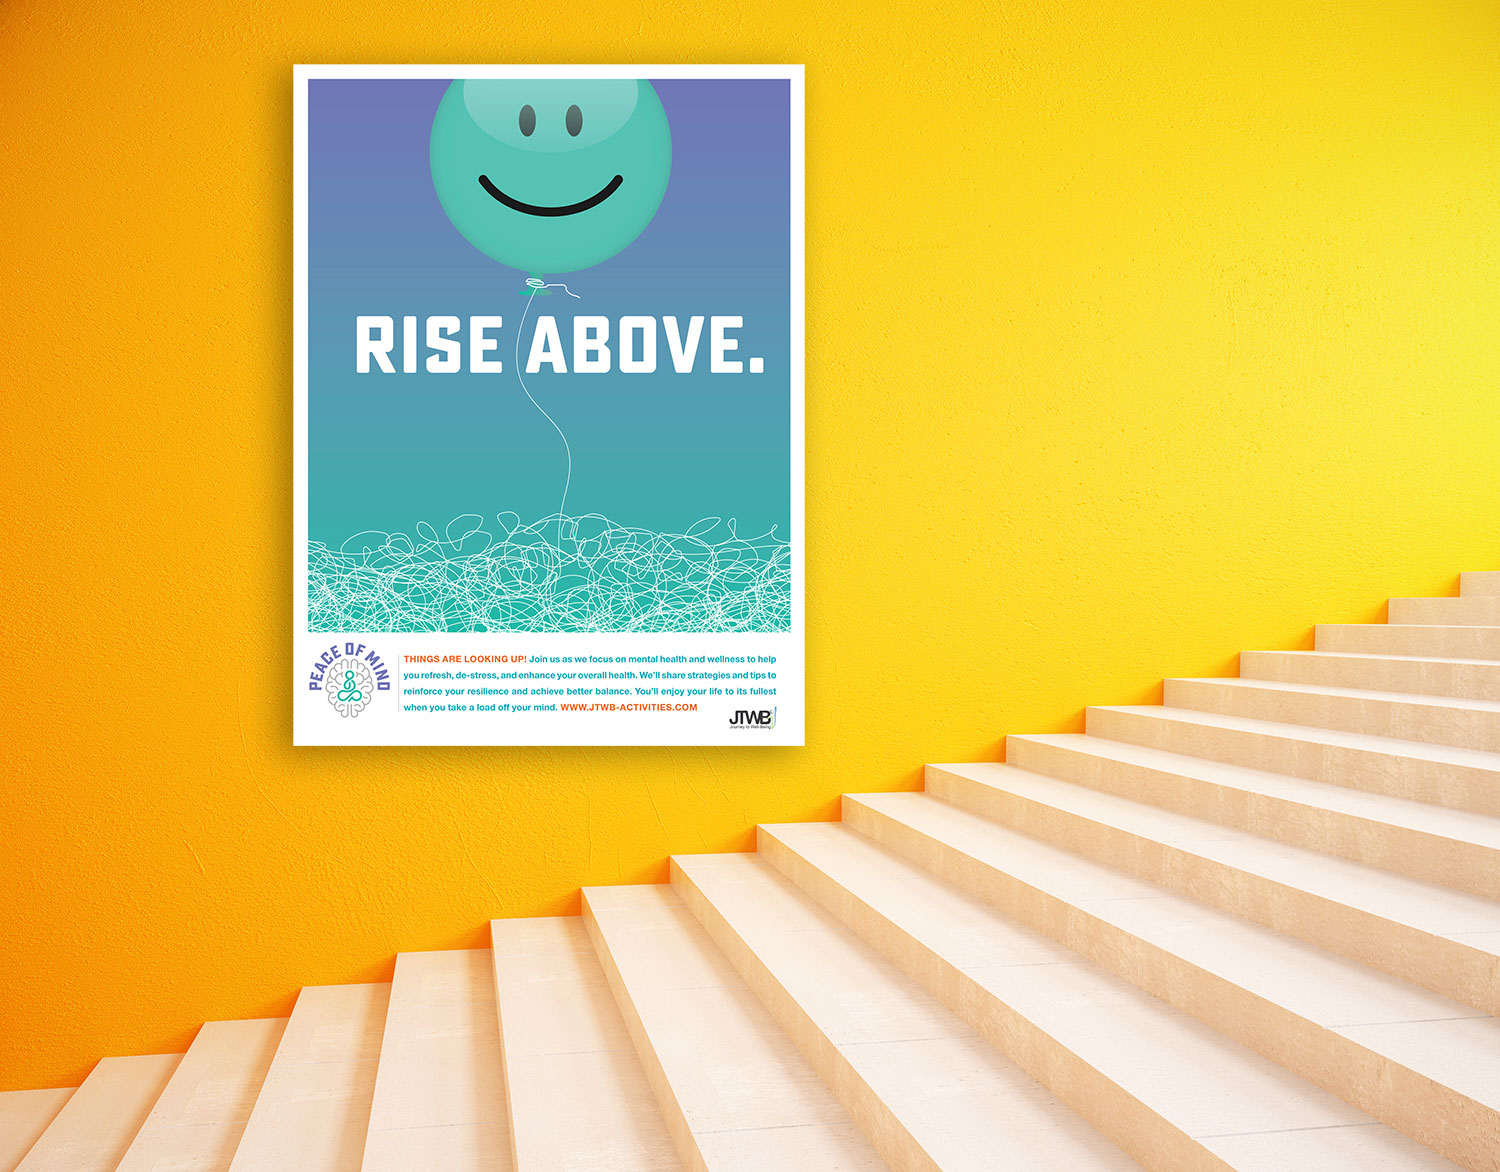 AFFINION-GROUP-RISE-ABOVE-POSTER-SLIDE.jpg